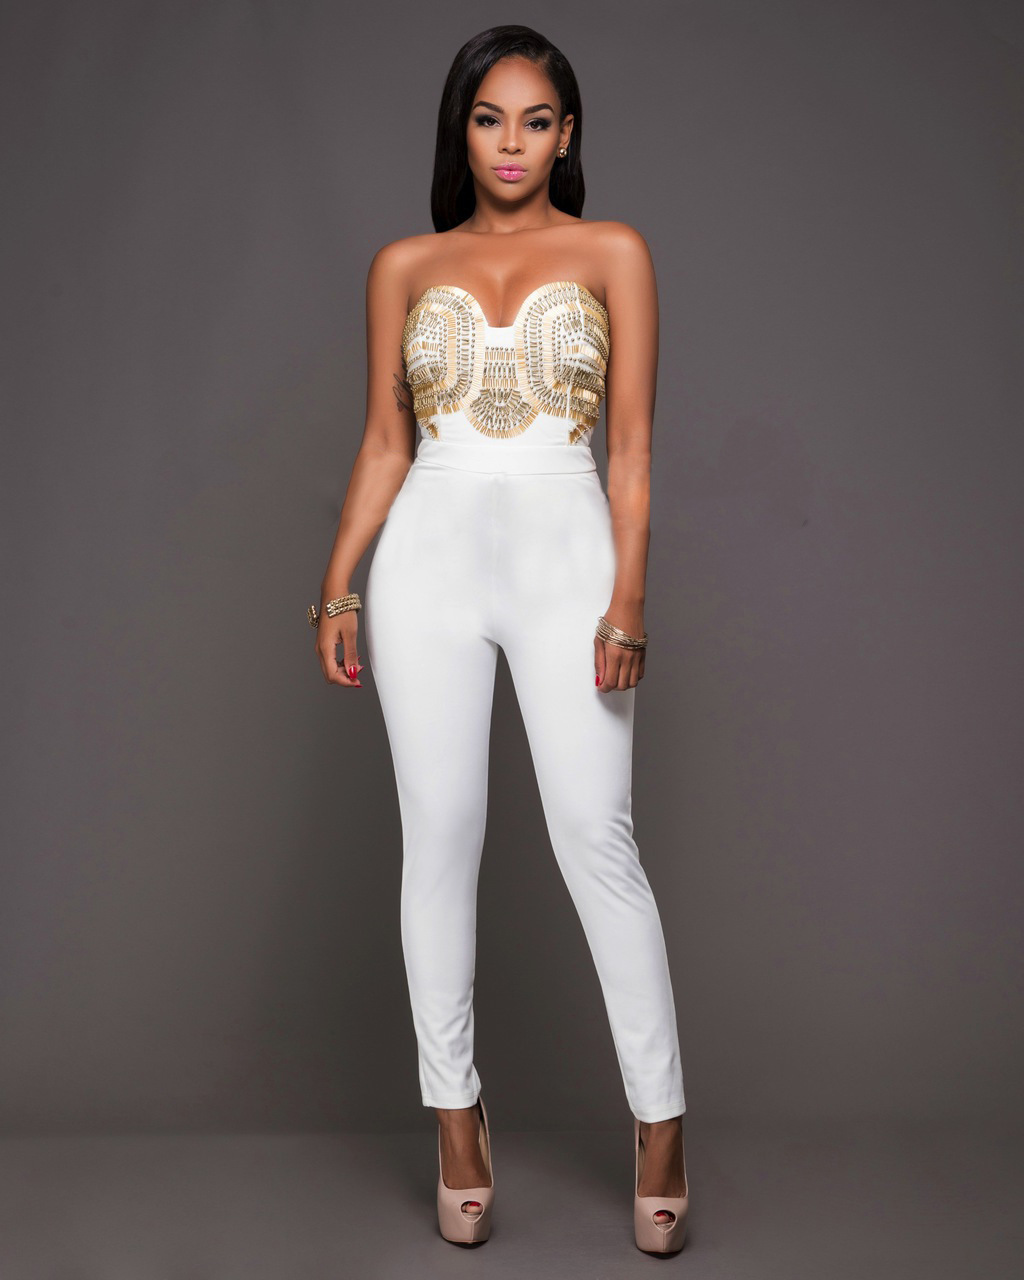 09208950e0f2 Feiterawn 2017 Black Women Bodycon Jumpsuits Sexy Strapless Backless Skinny Rompers  Club Wear Jumpsuits Back Zipper OS6005